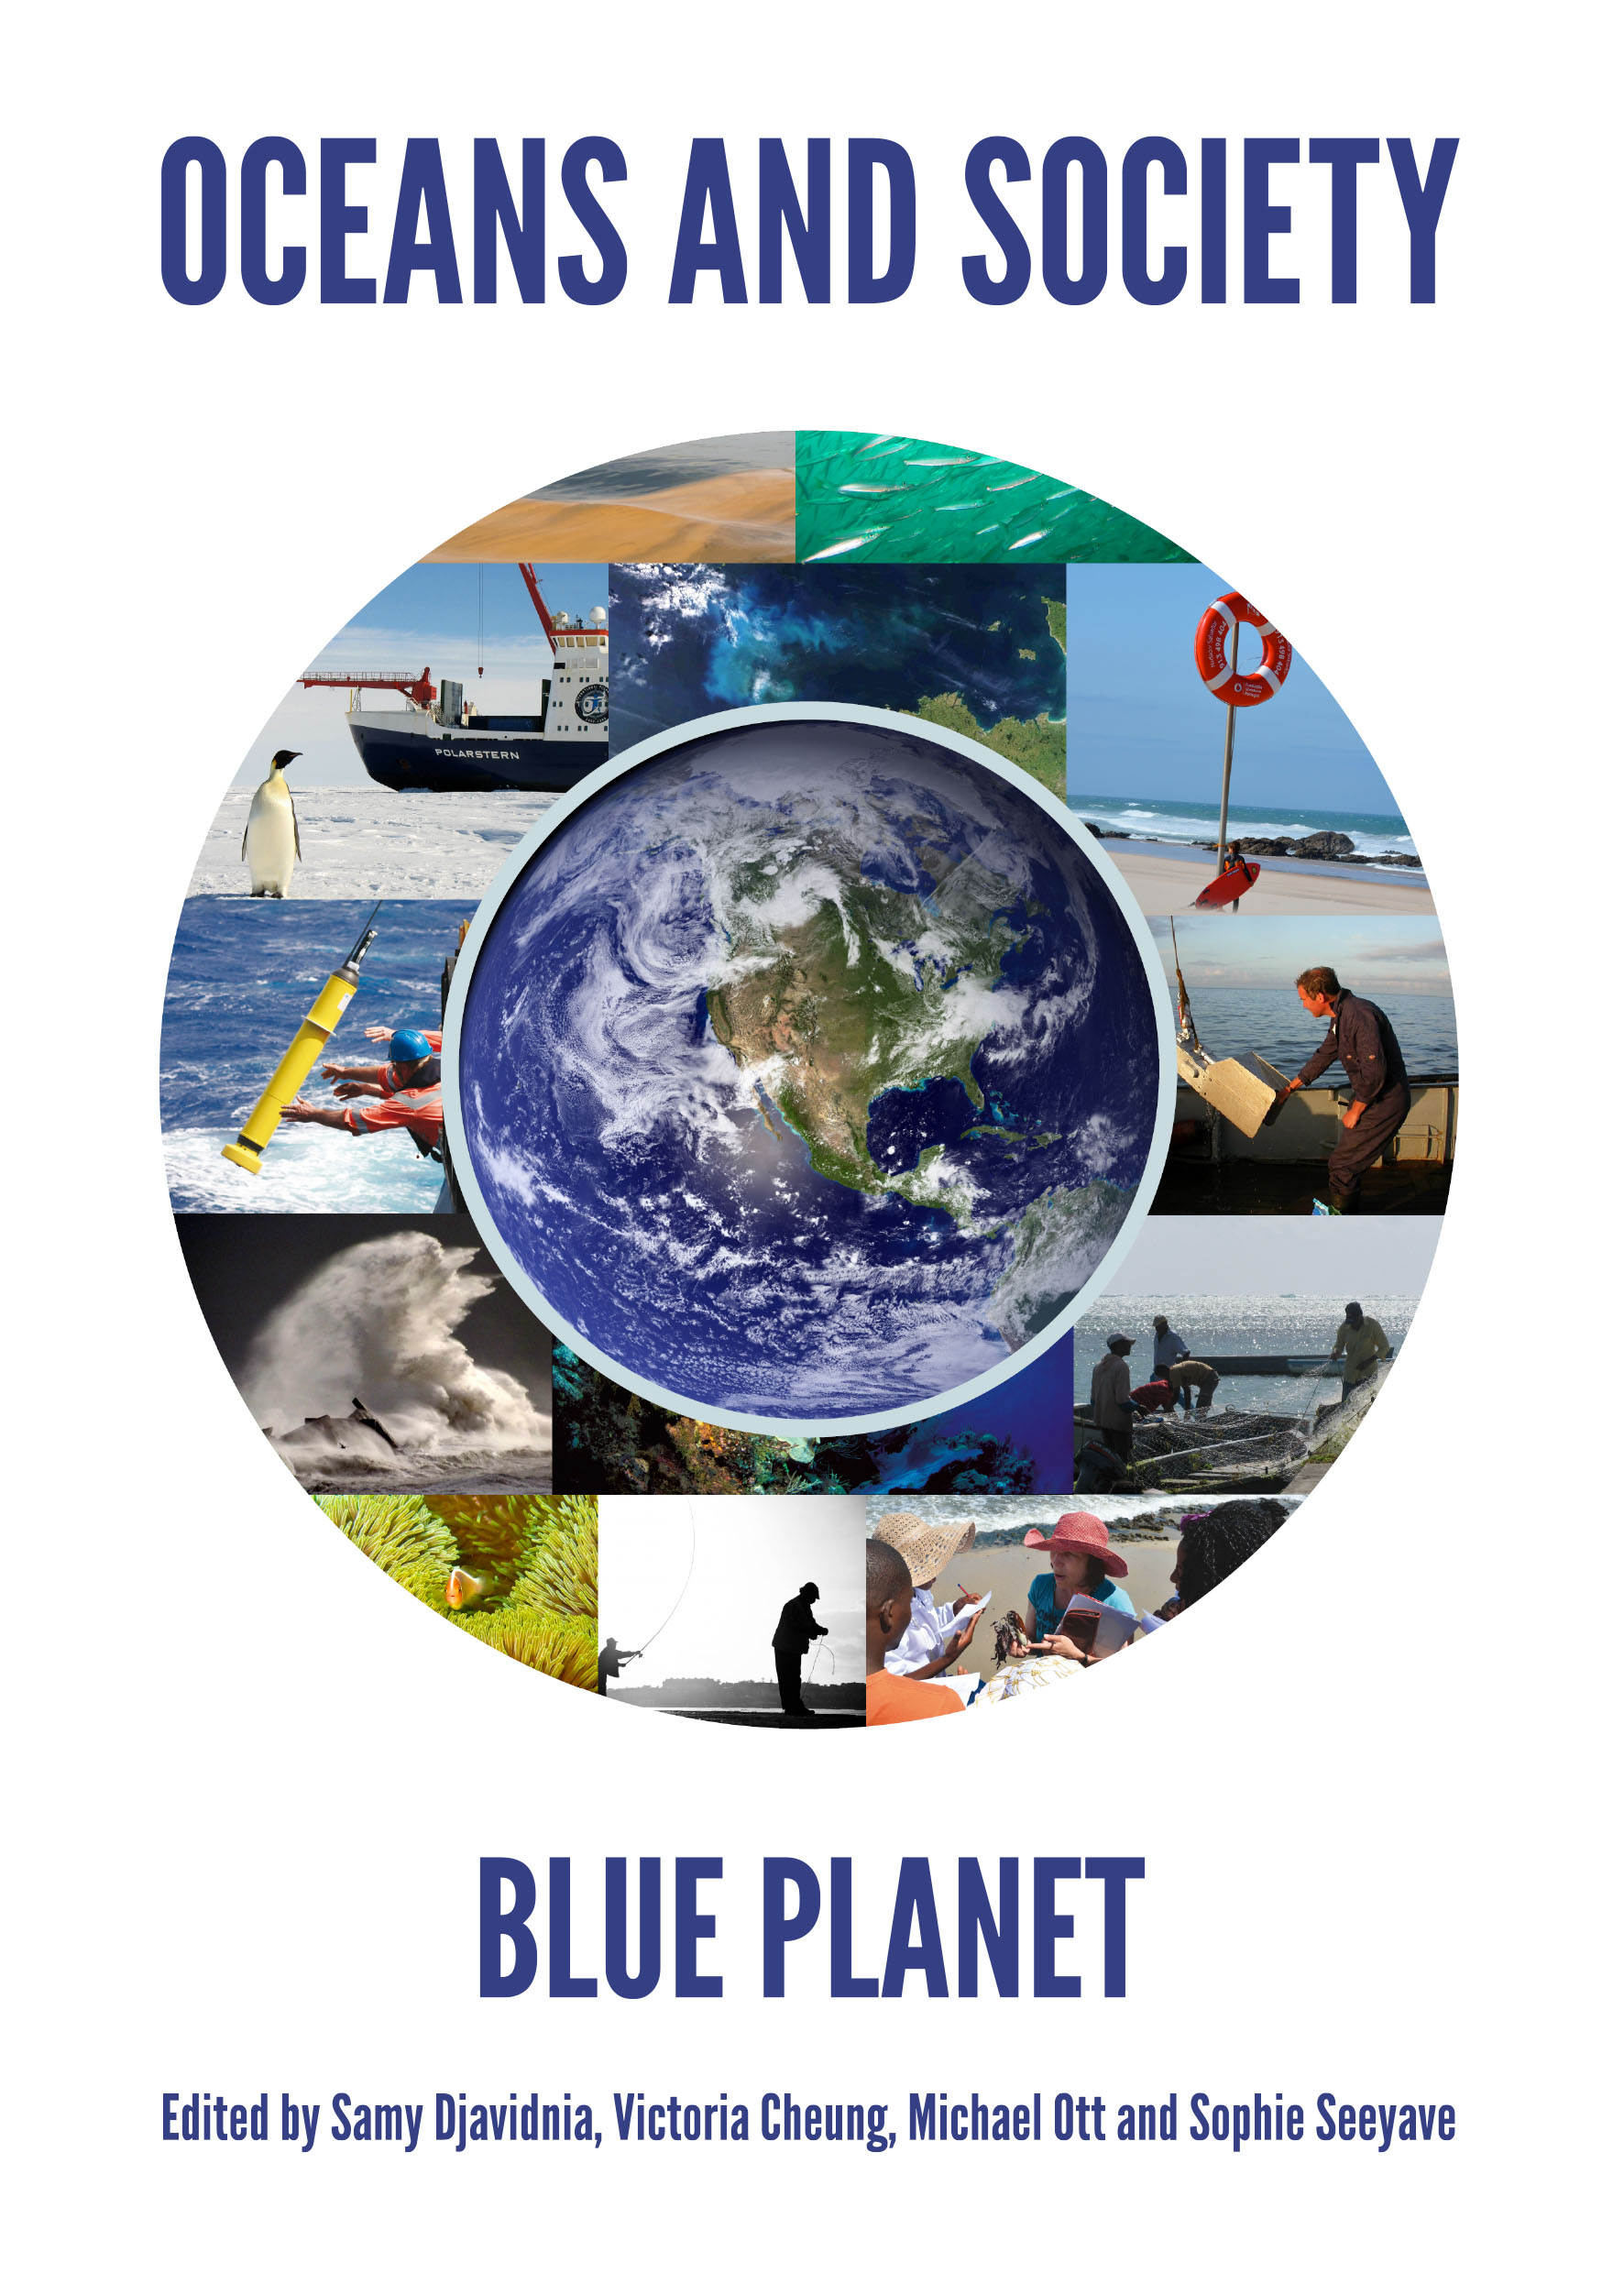 Oceans and Society: Blue Planet